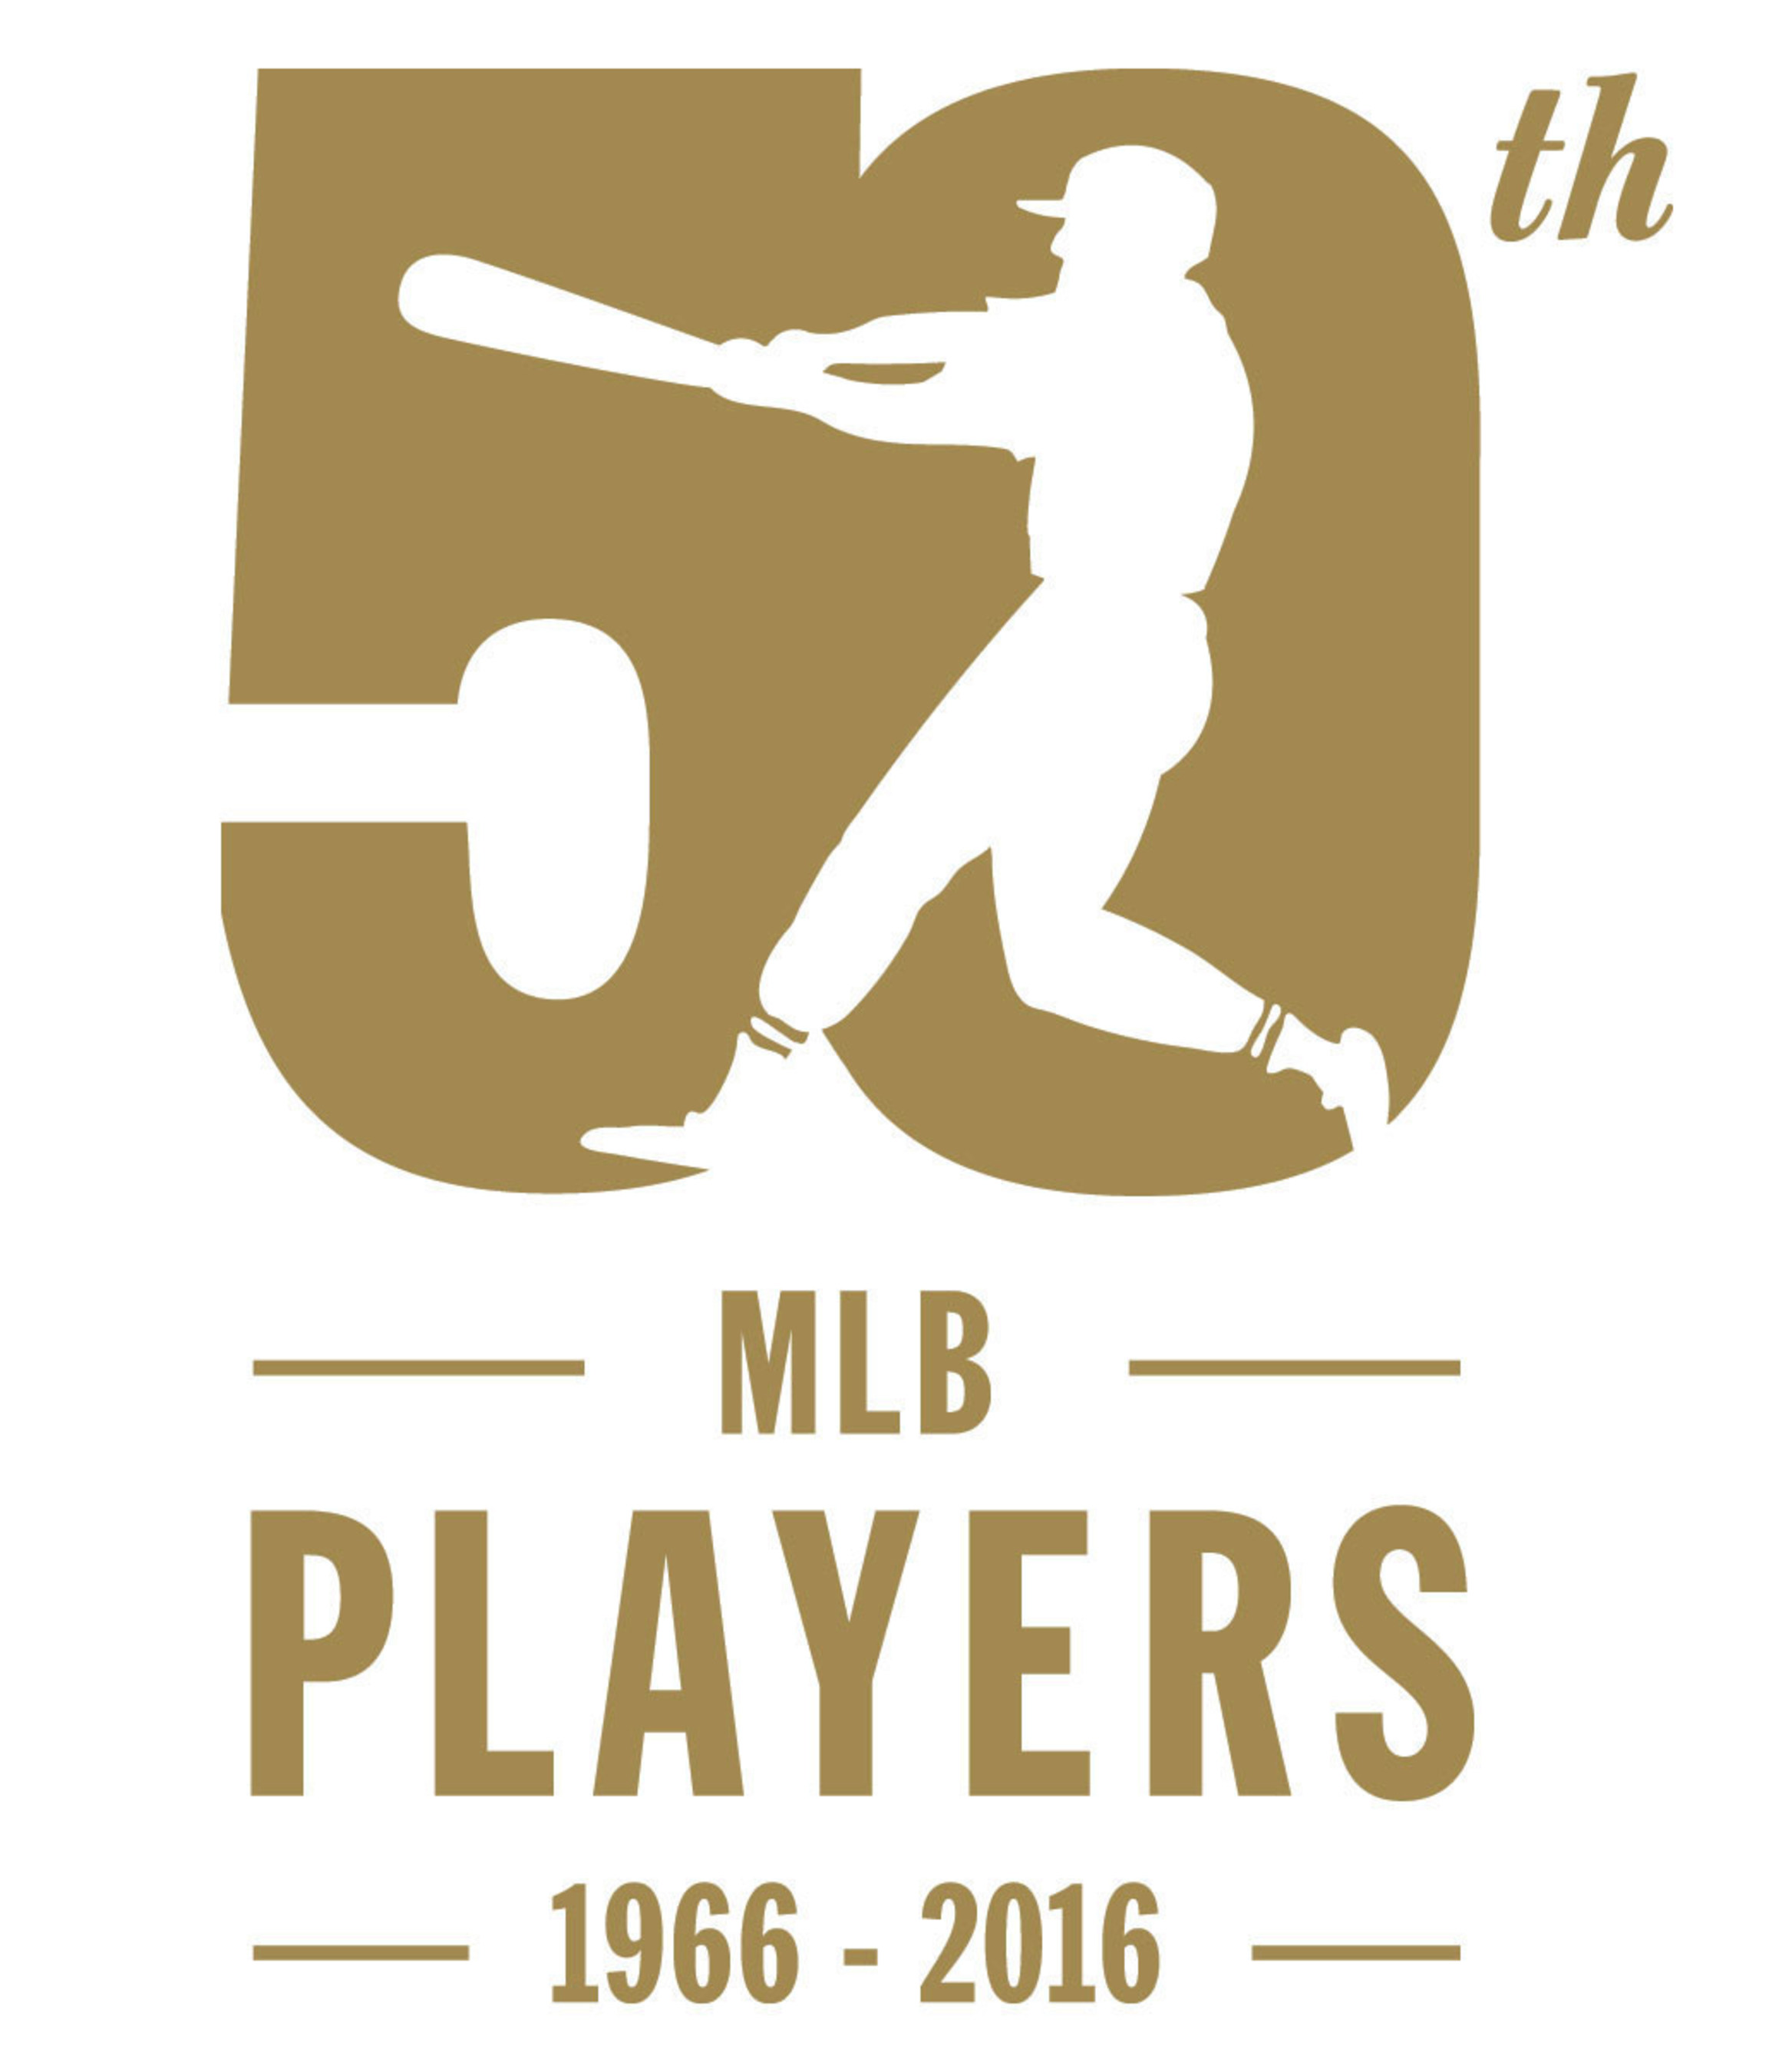 MLBPA to Celebrate its 50th Anniversary as a Labor Organization